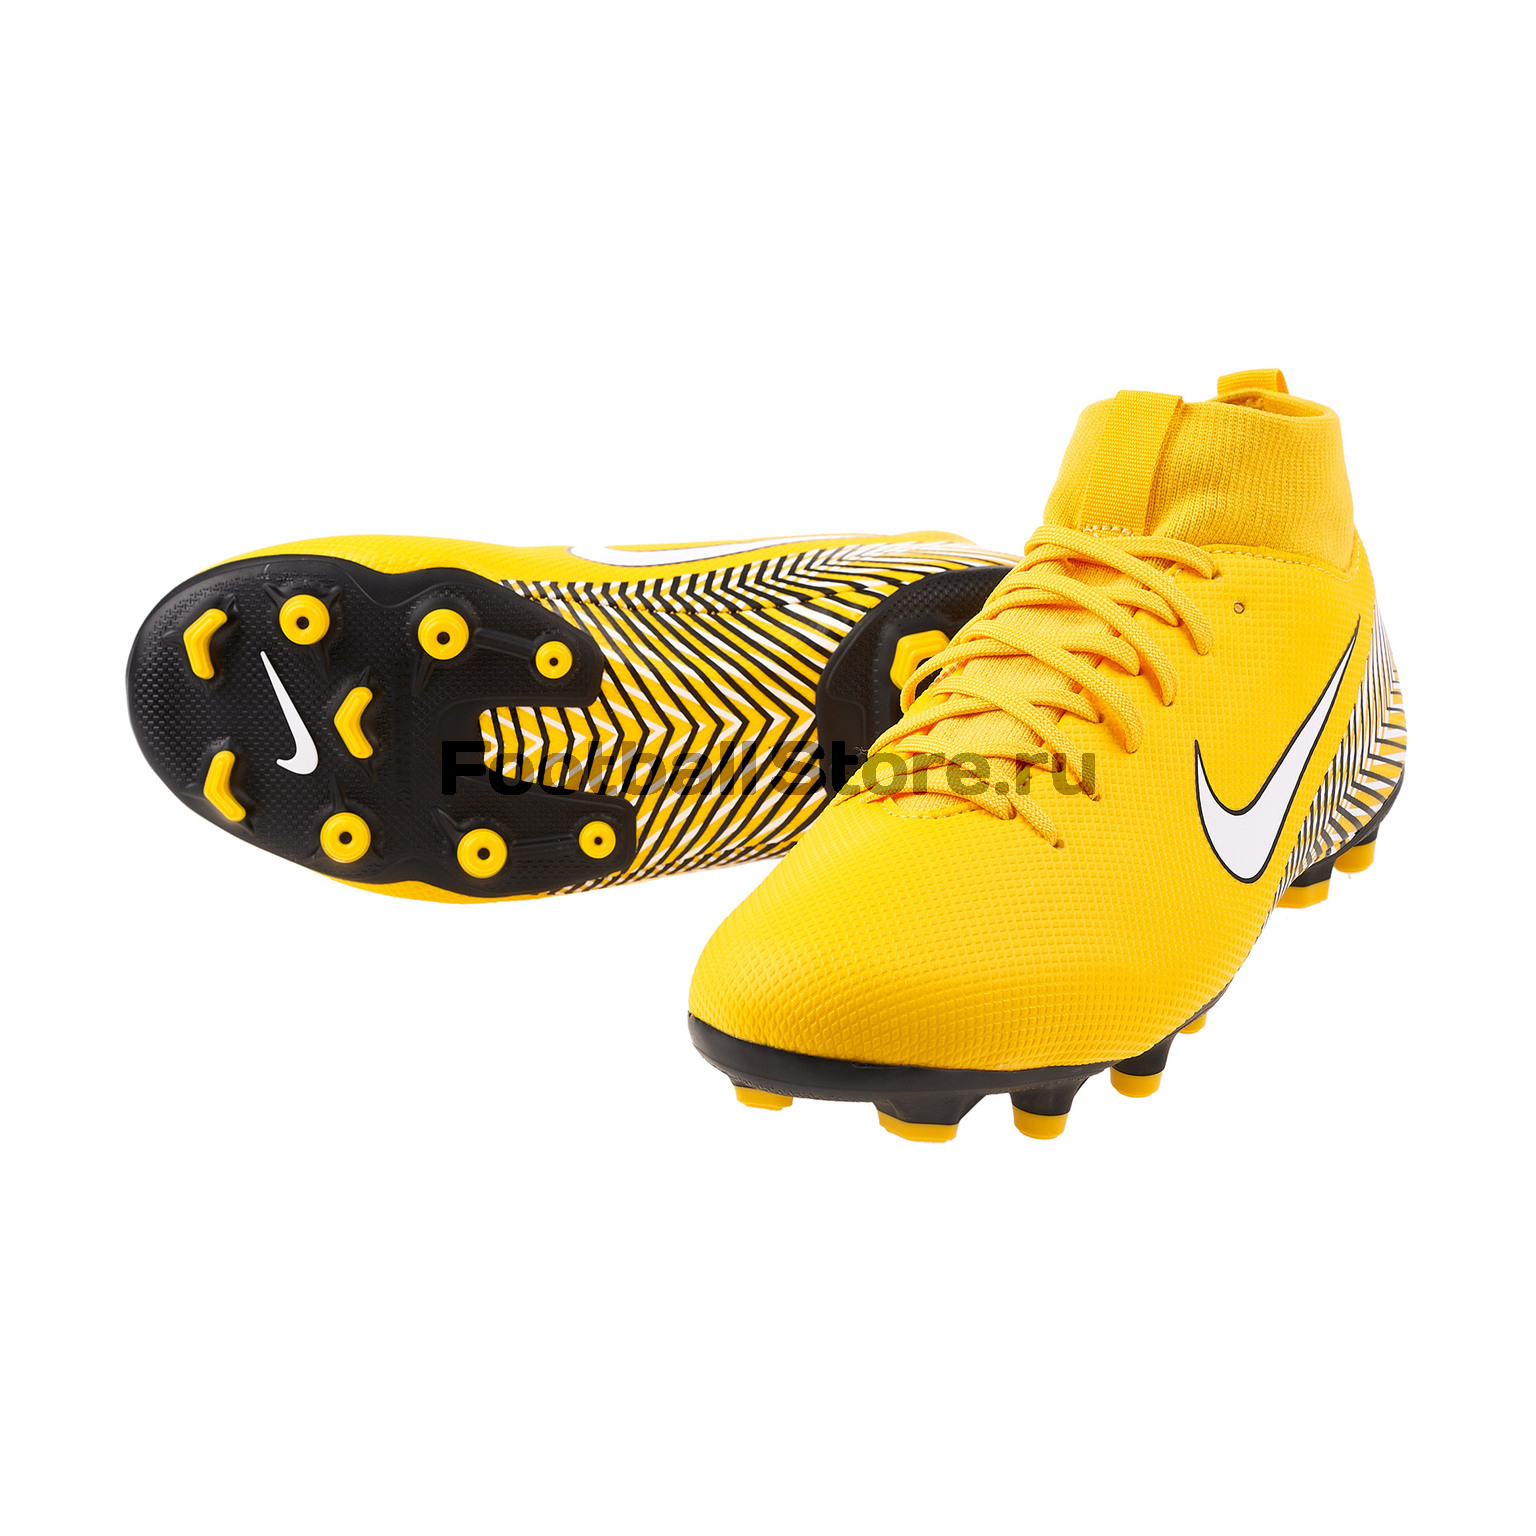 Бутсы детские Nike Superfly 6 Academy Neymar FG/MG AO2895-710 бутсы детские nike superfly academy gs cr7 fg mg aj3111 600